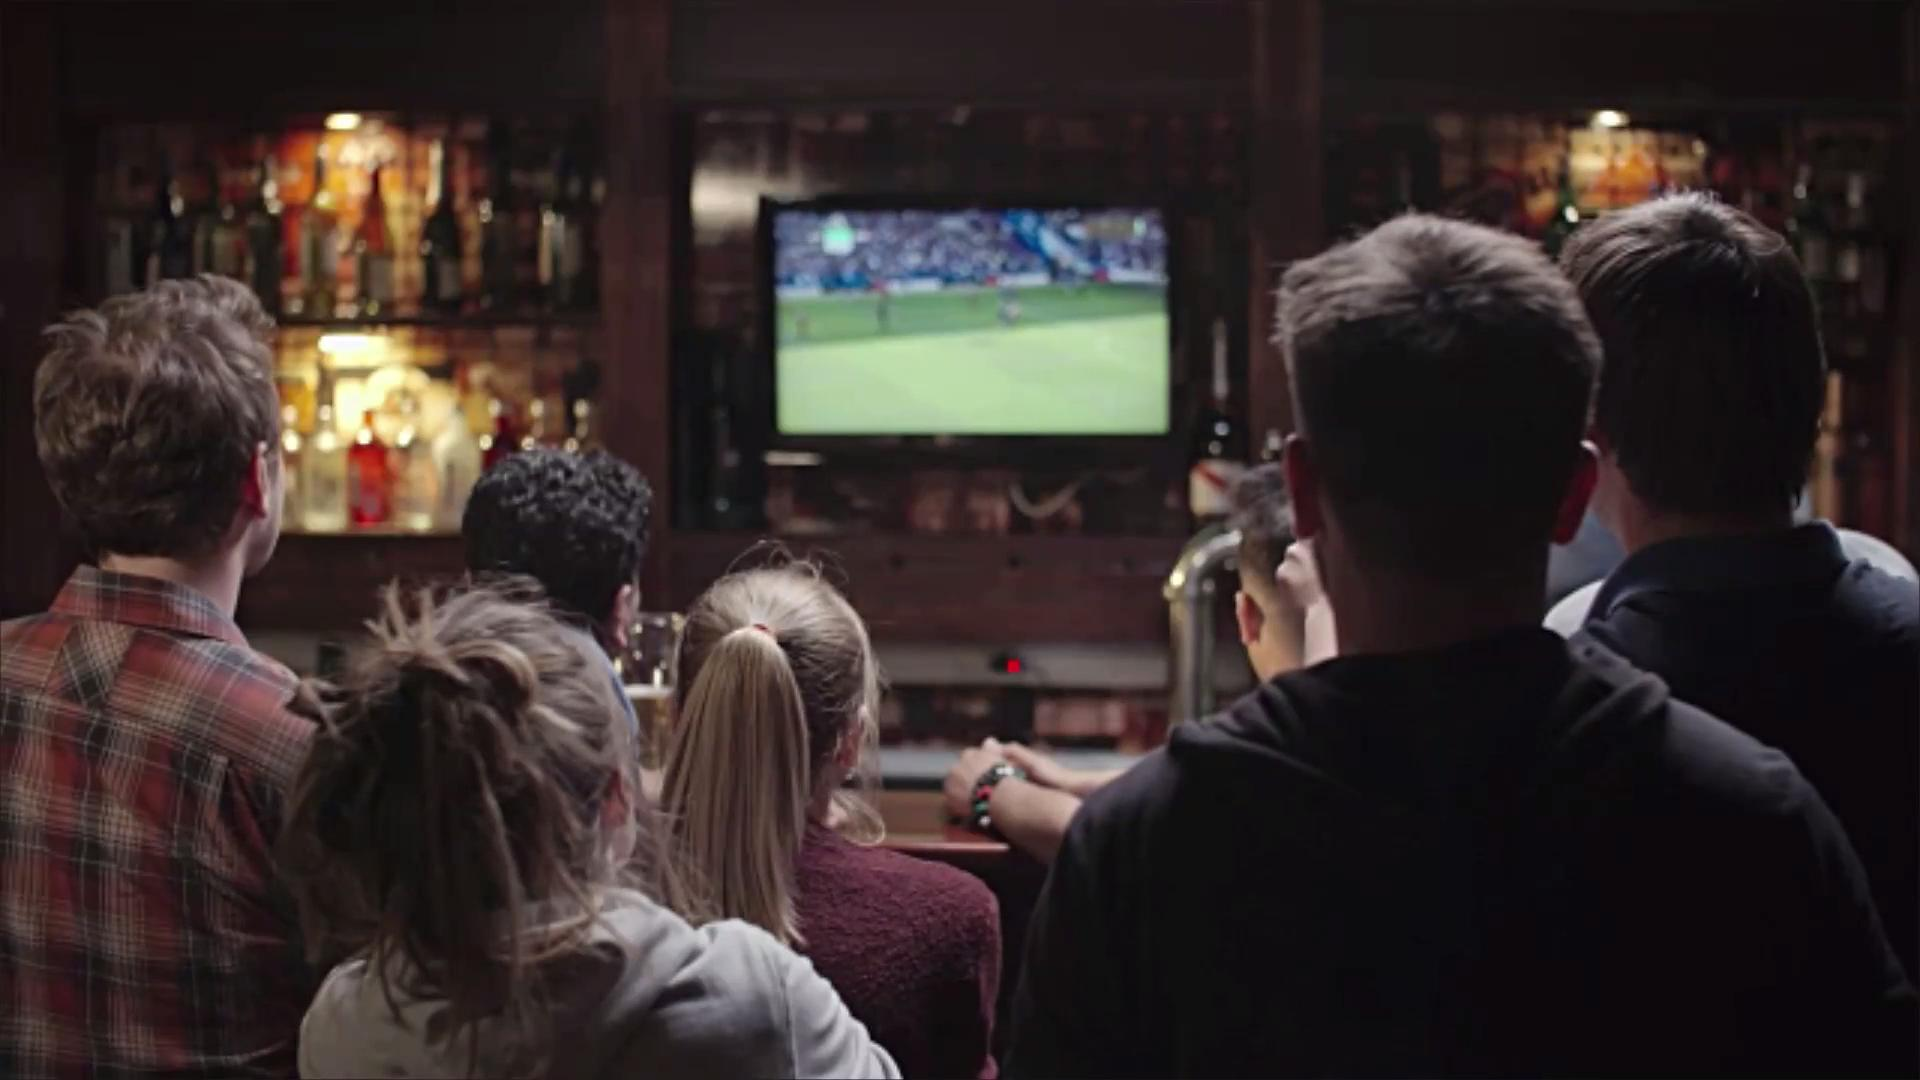 The Best College Football Bars in Every State, According to Yelp